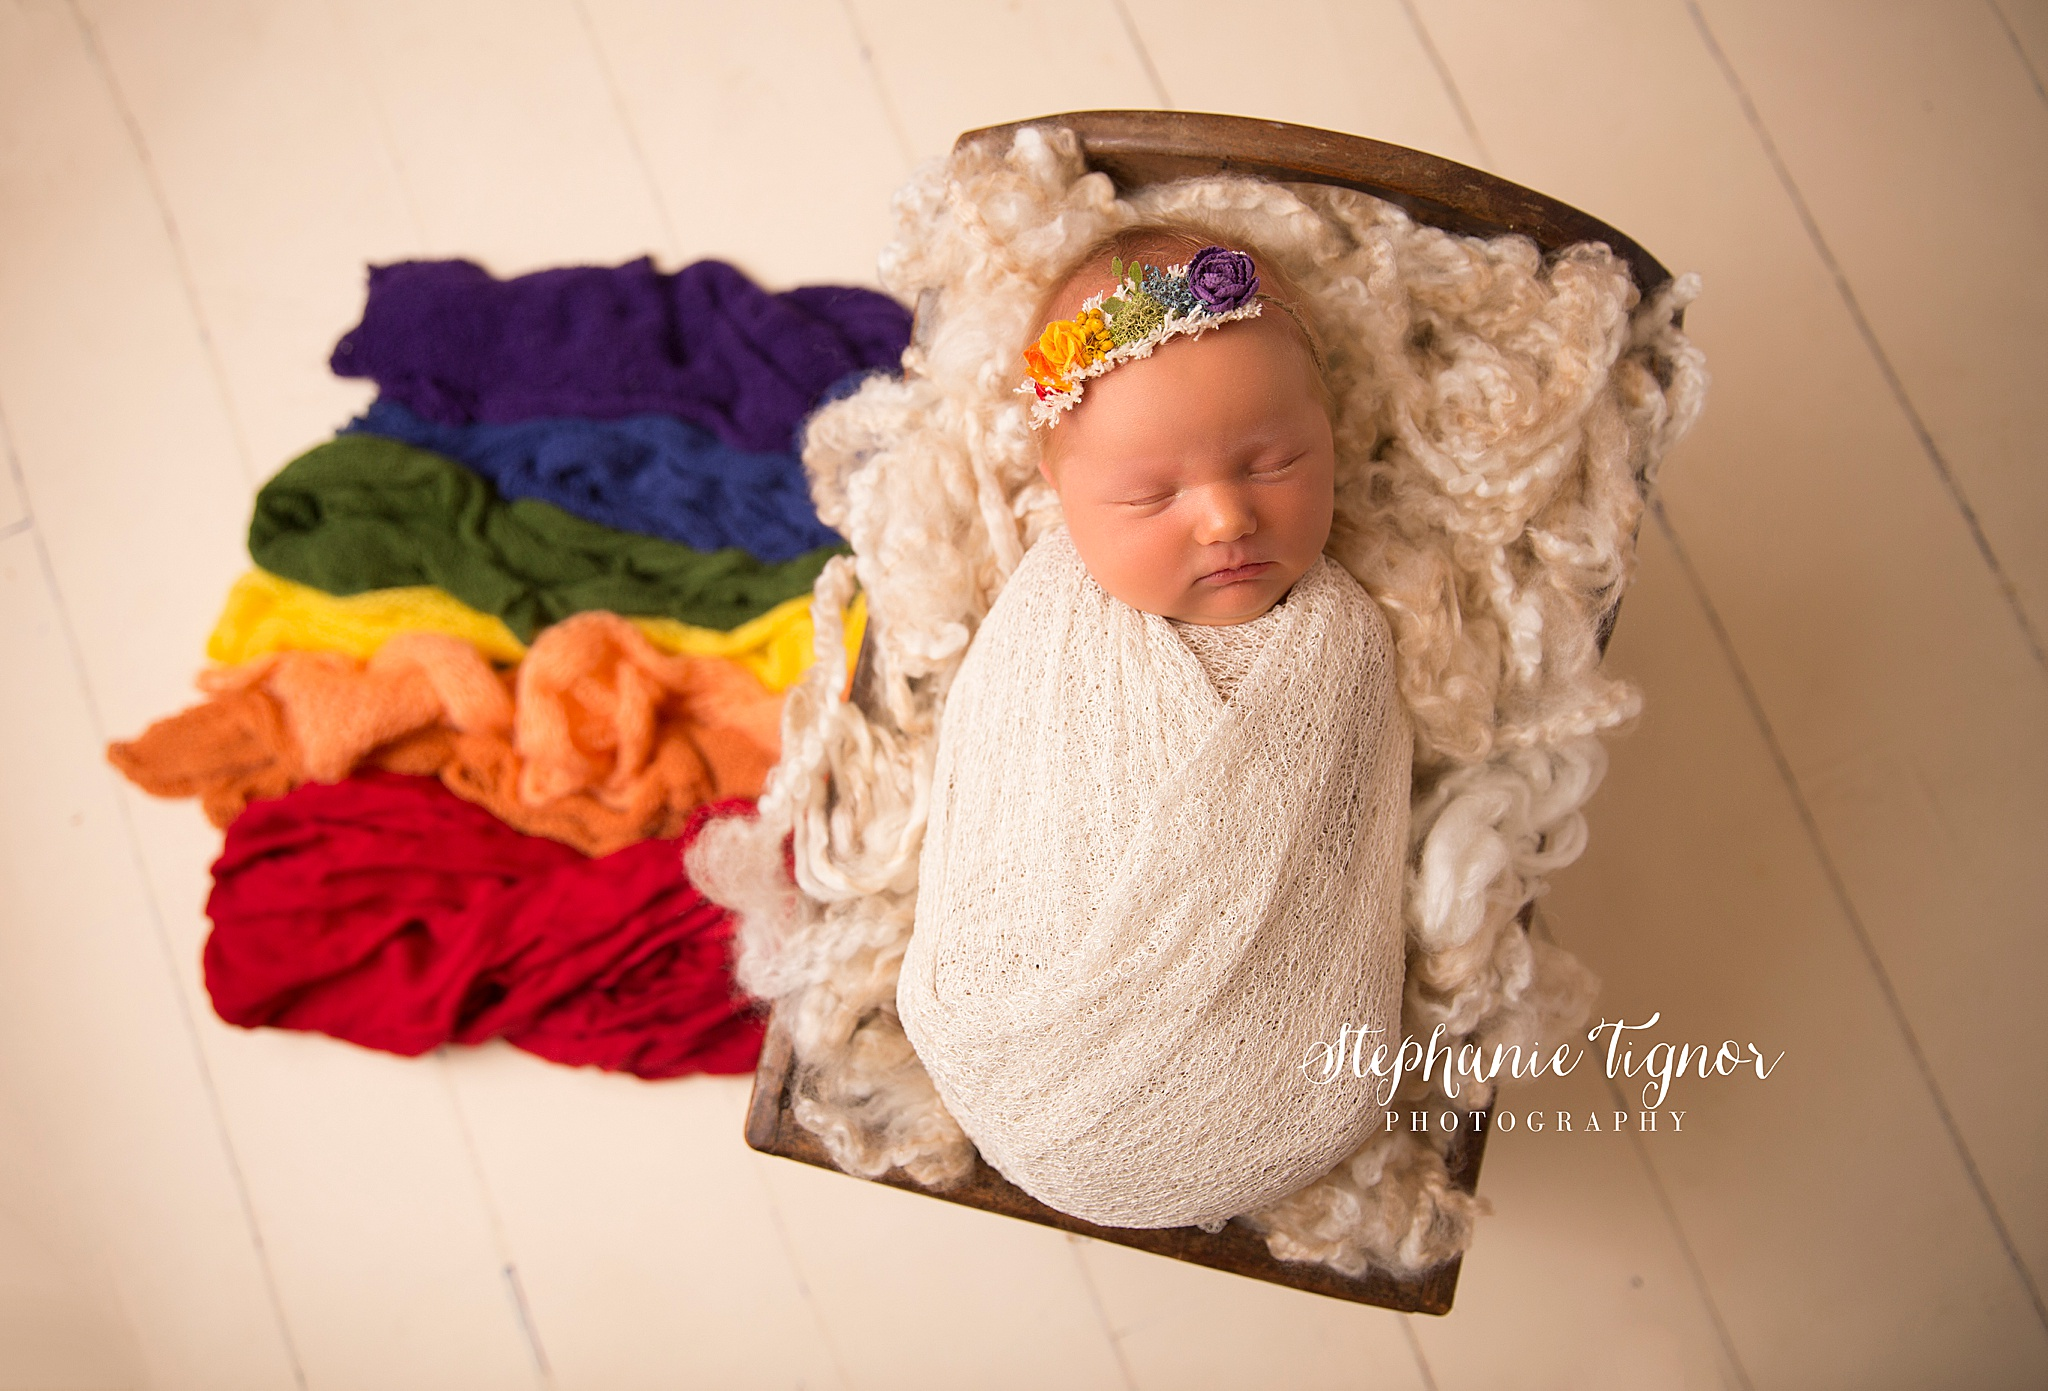 Stephanie Tignor Photography | Fredericksburg VA Newborn Photographer | Warrenton VA Newborn Photographer | Stafford VA Newborn Photographer | Newborn Photographer, baby girl newborn portraits, baby girl newborn pictures, Rainbow Baby newborn portraits, girl newborn